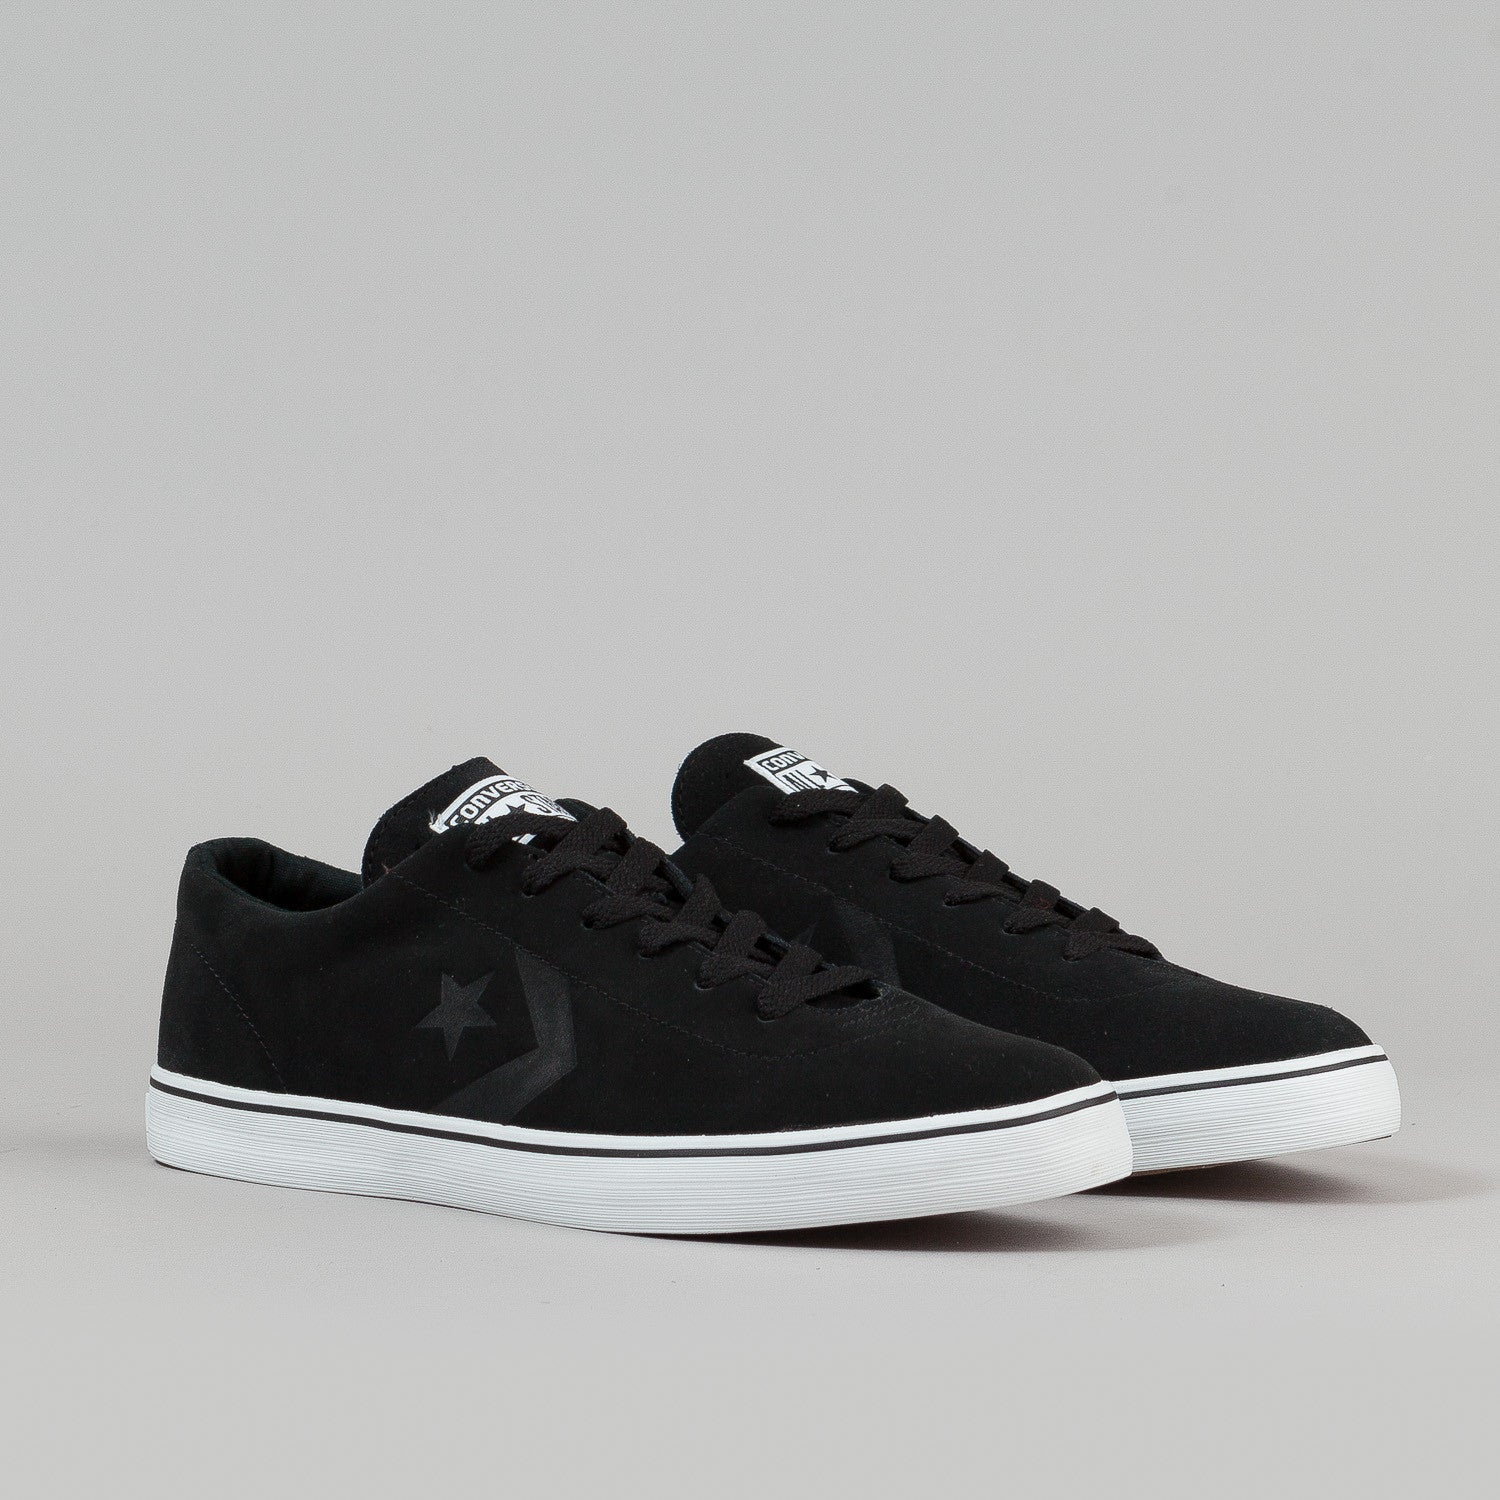 Converse Elm LS OX Shoes - Black / White